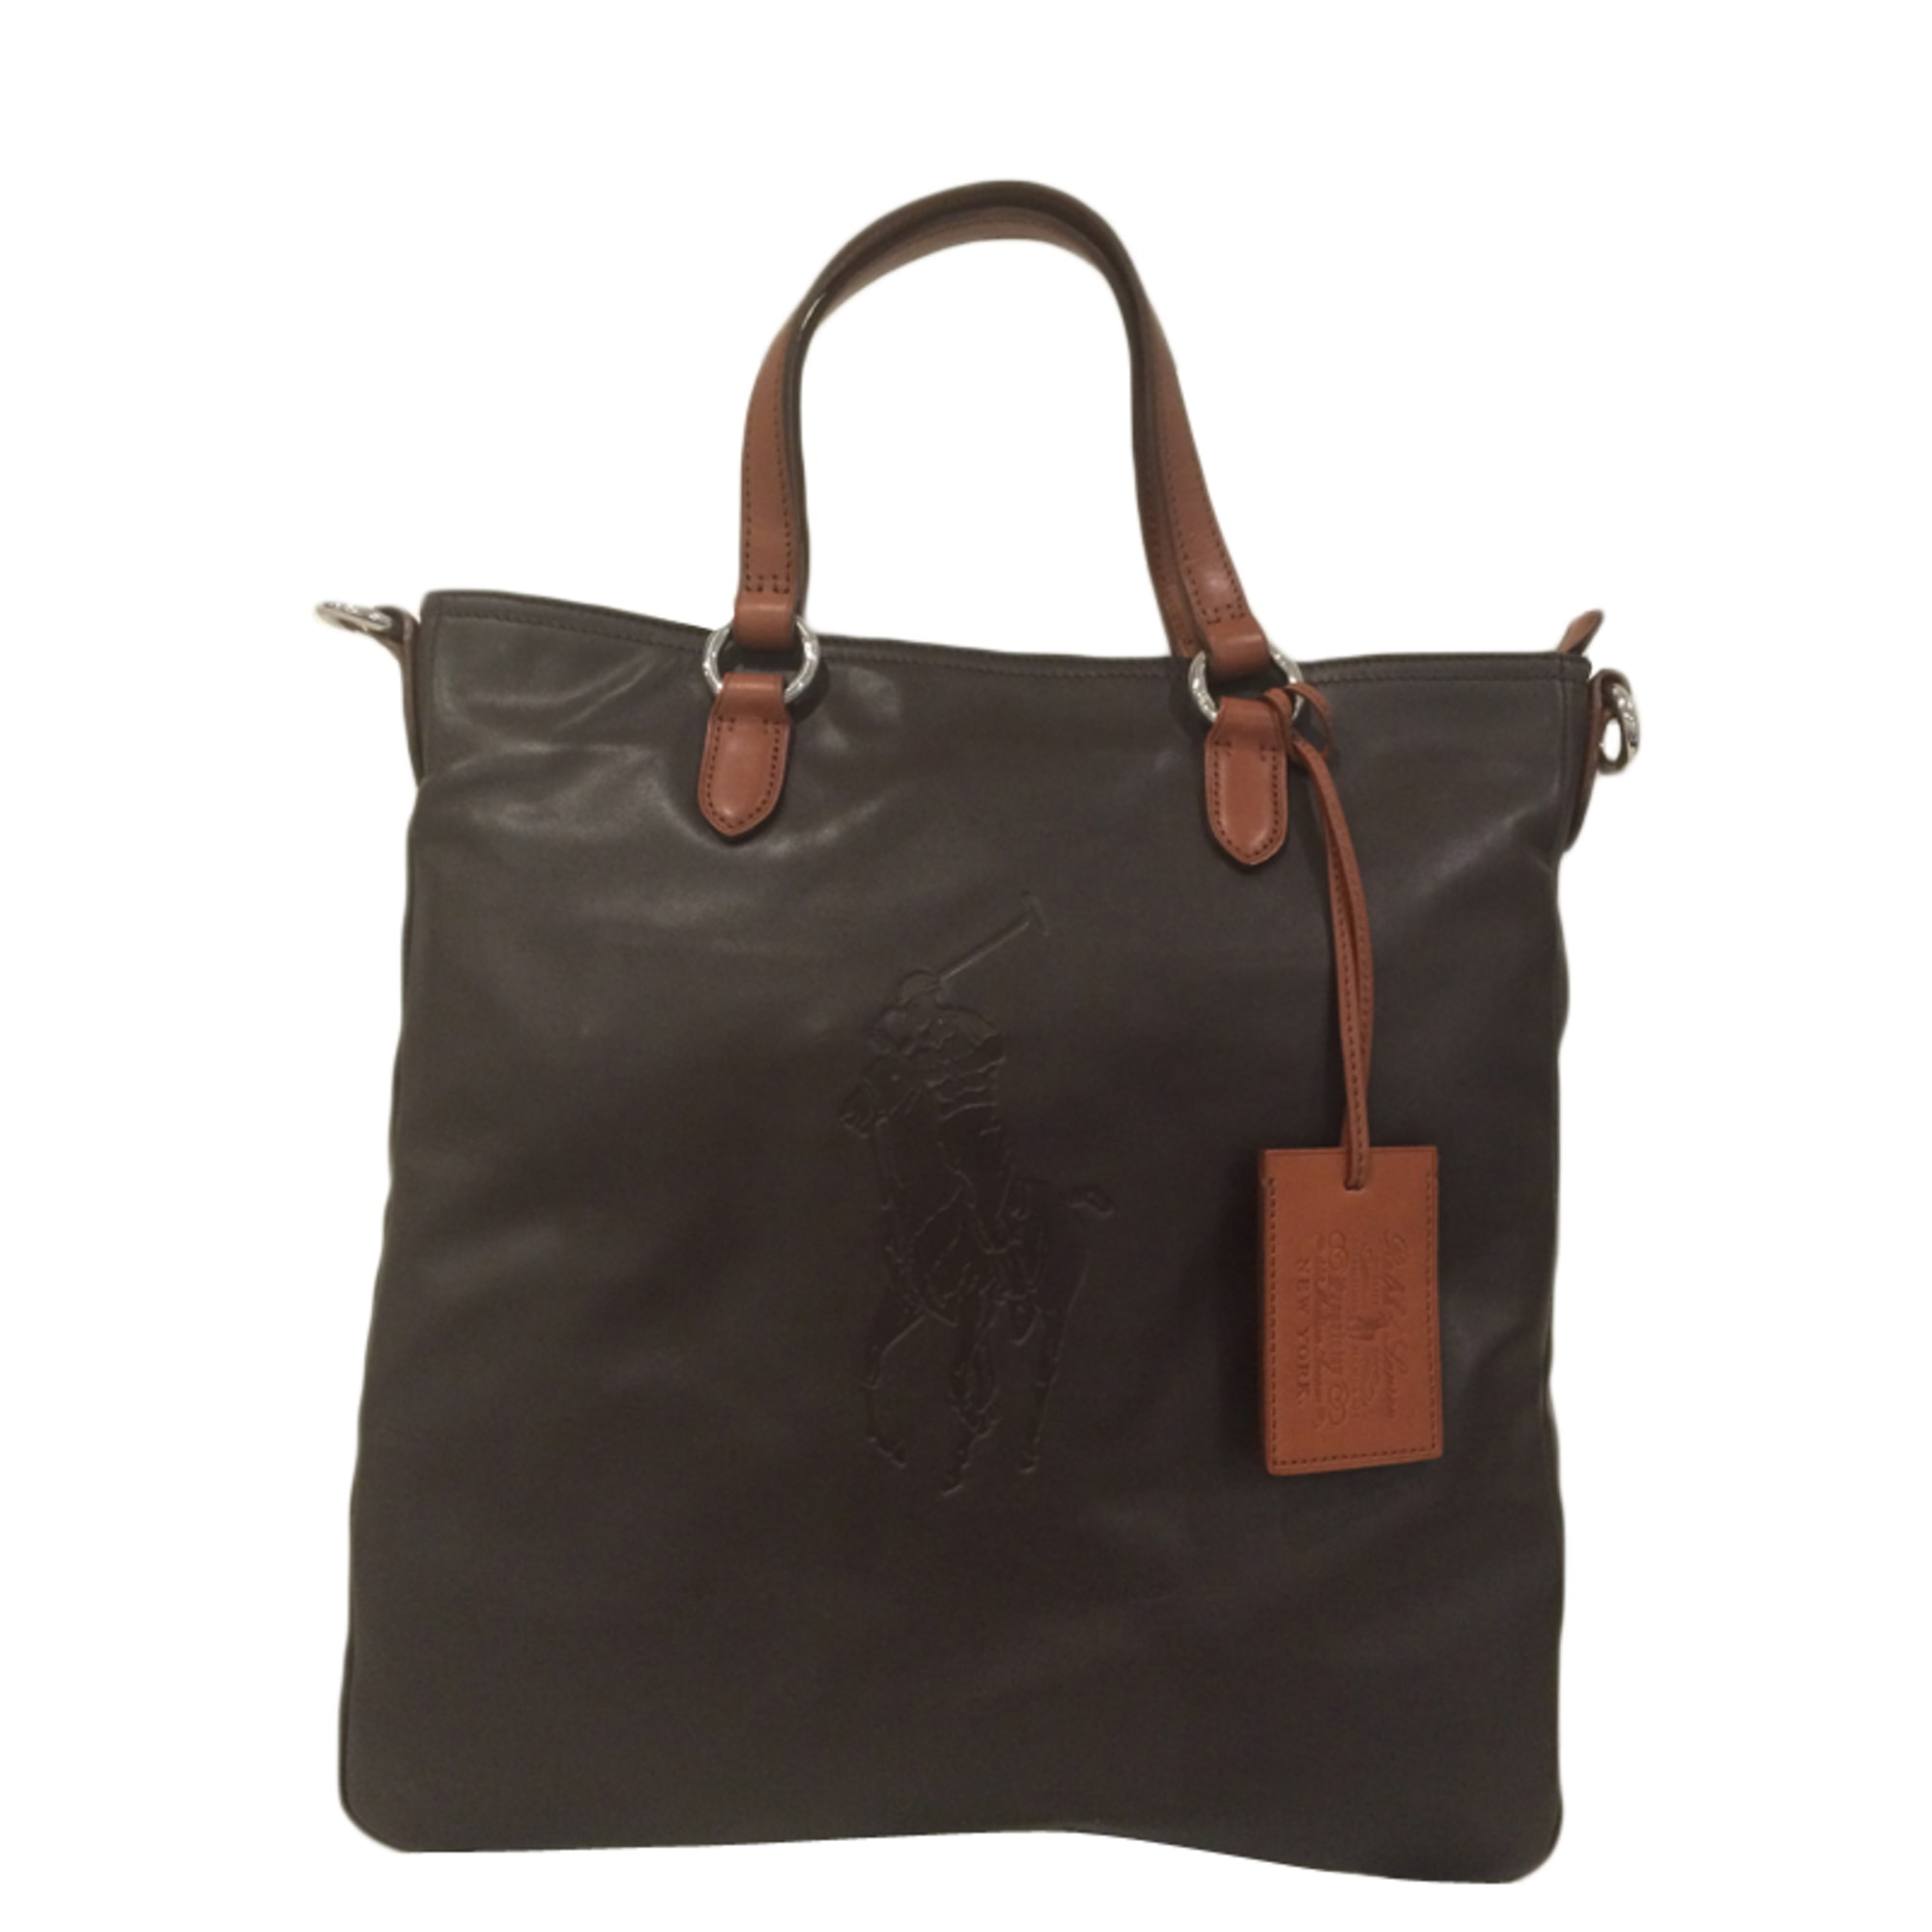 Sac XL en cuir RALPH LAUREN Marron